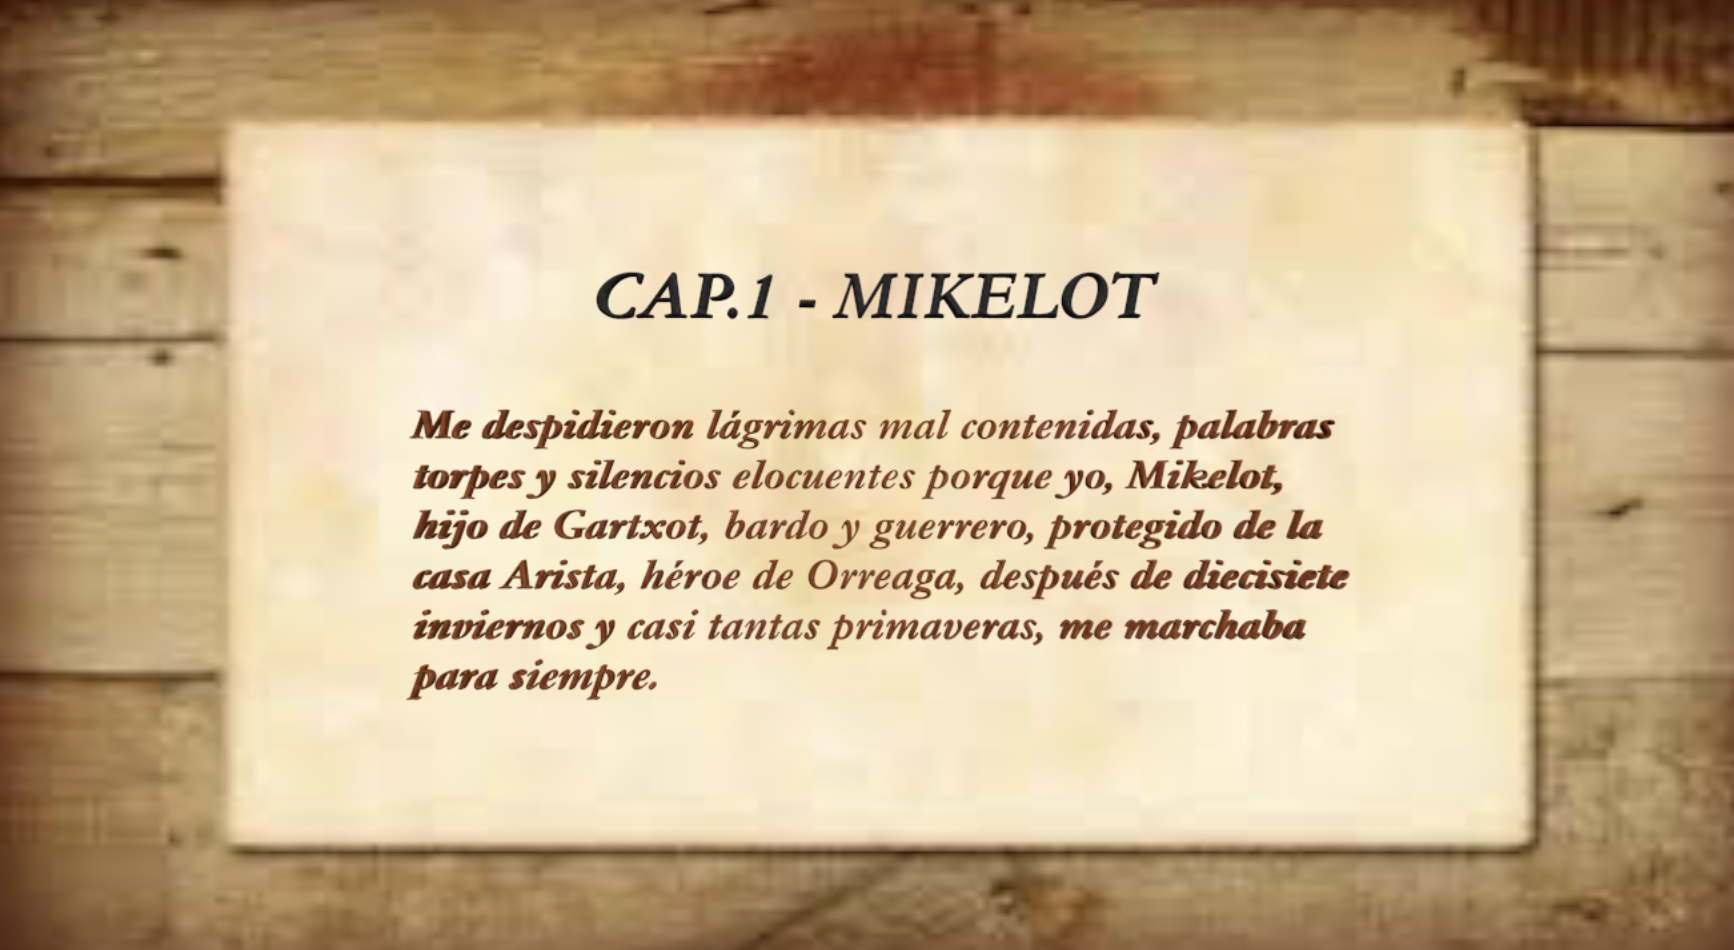 1 mikelot 1